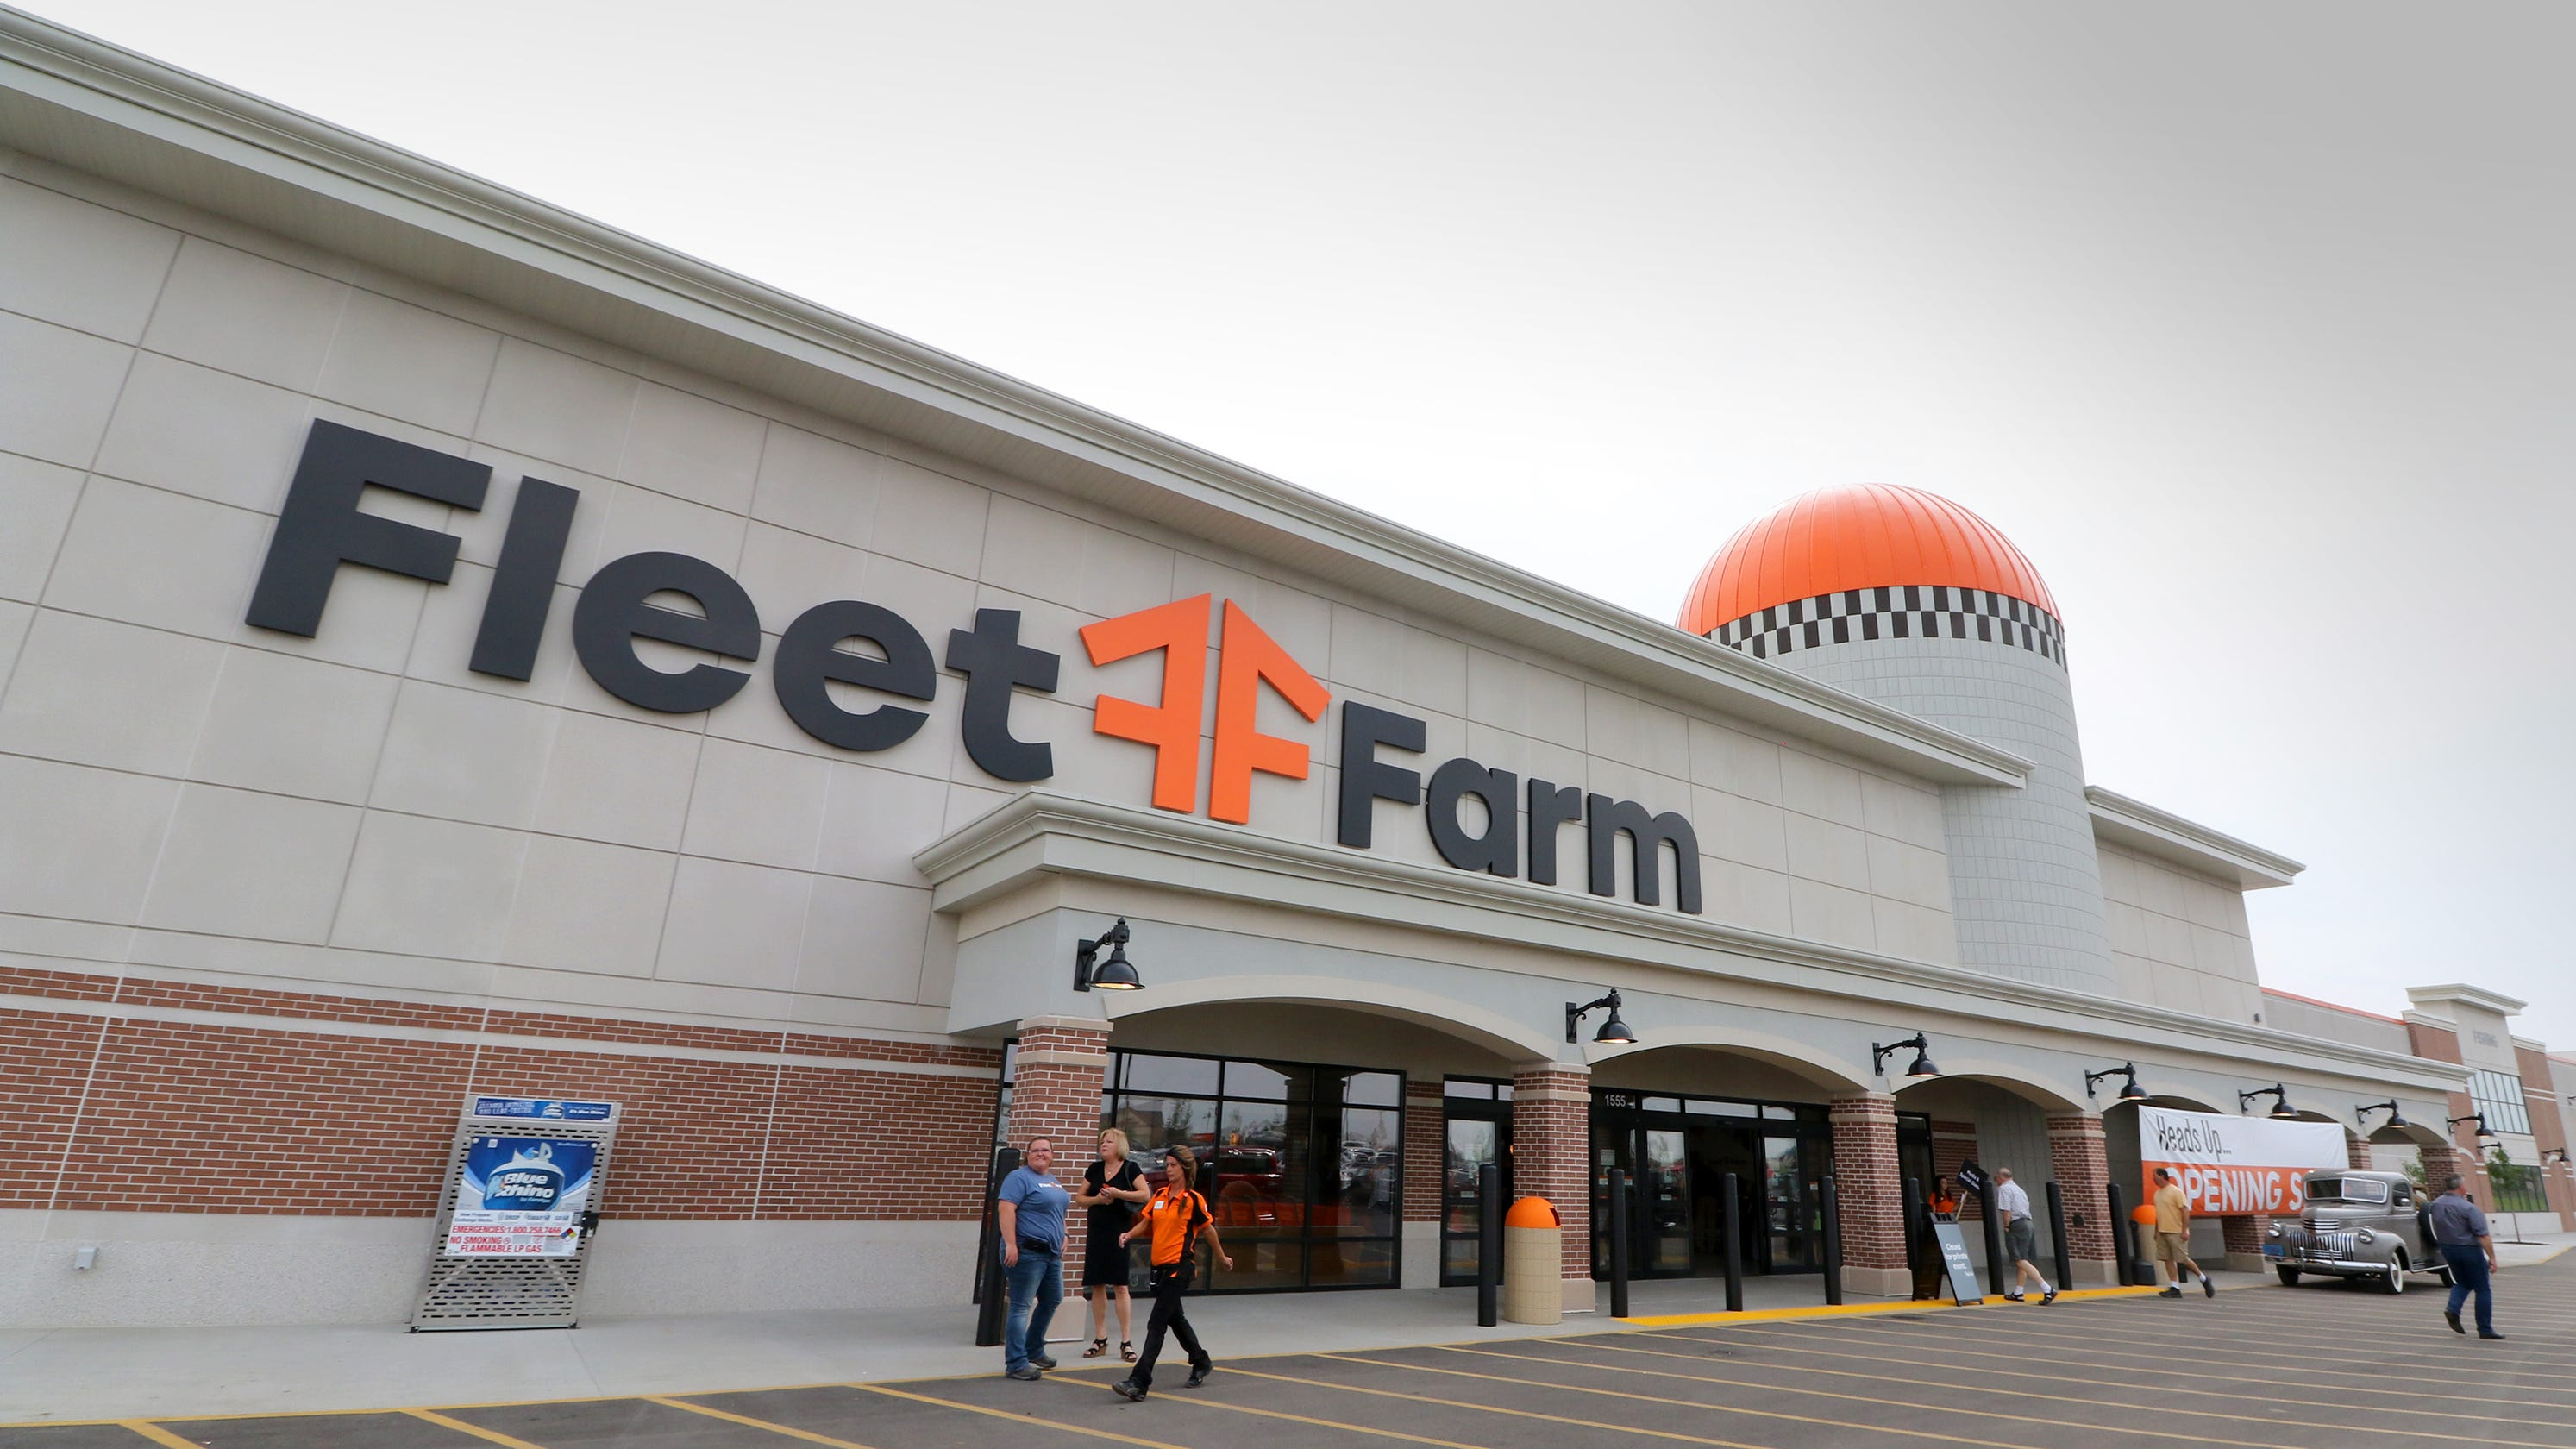 fleet farms holiday tradition to begin at oconomowoc location oct 13